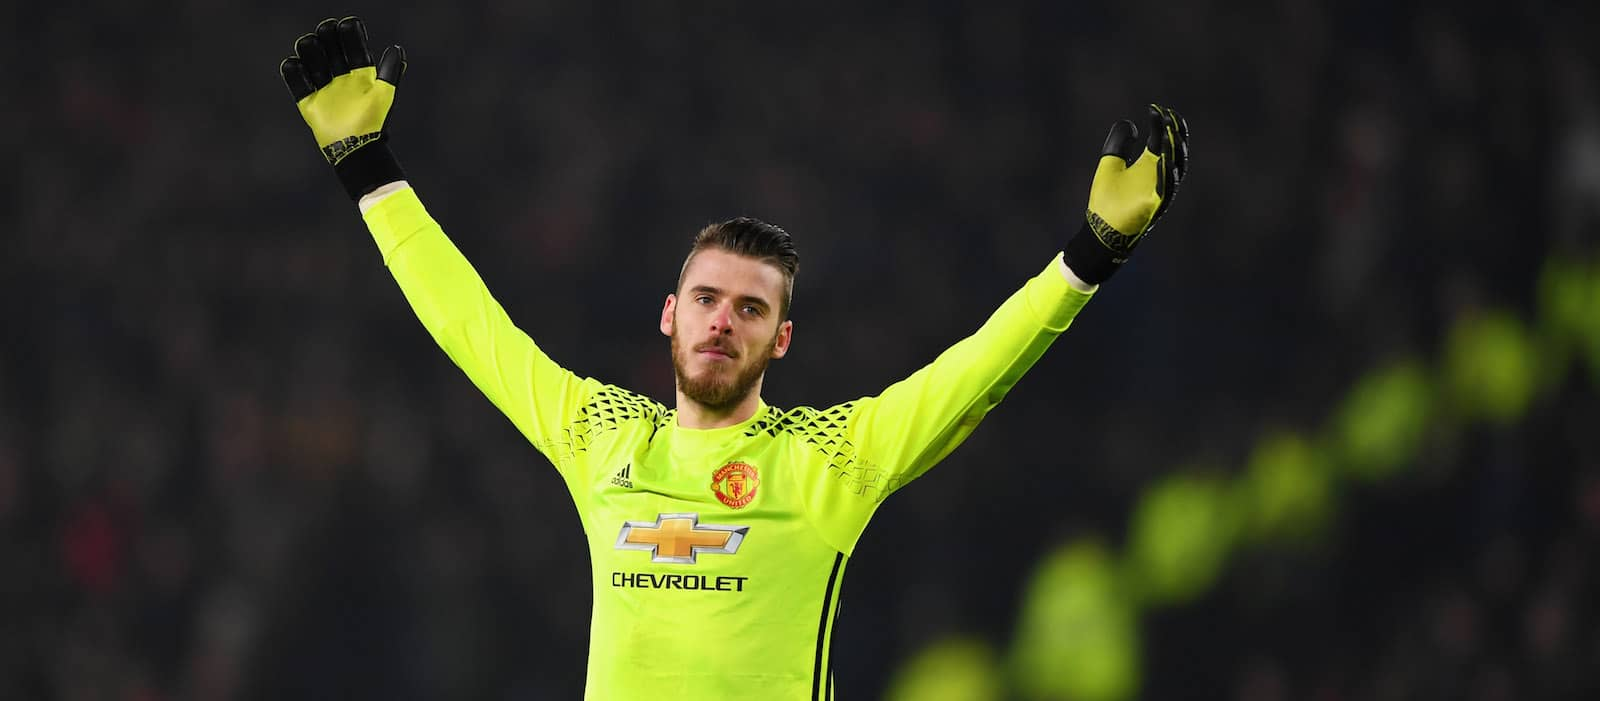 David de Gea has already asked Manchester United to sell him to Real Madrid – report